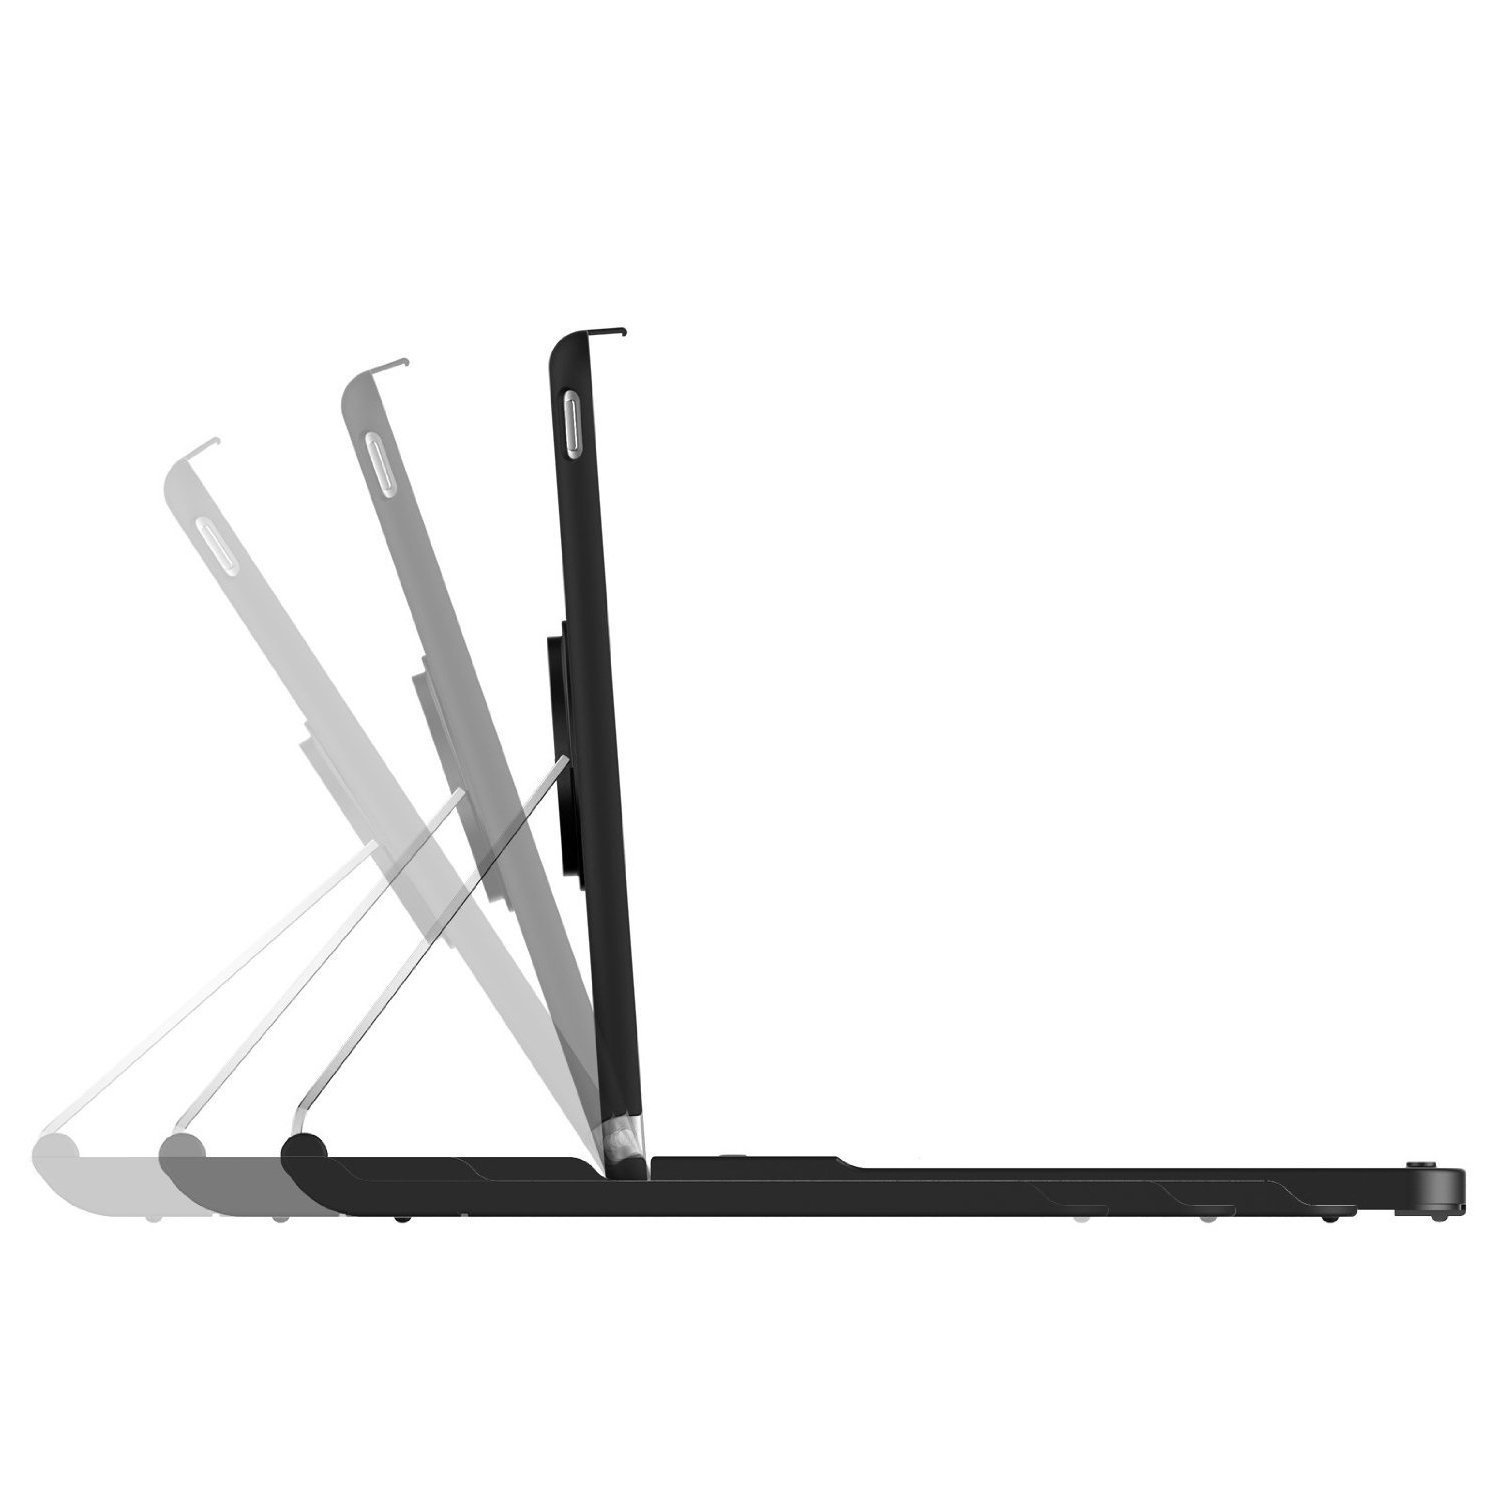 JETech Bluetooth Keyboard Case for Apple iPad Air 2, 360 Degree Rotation, Multi-Angel Stand by JETech (Image #7)